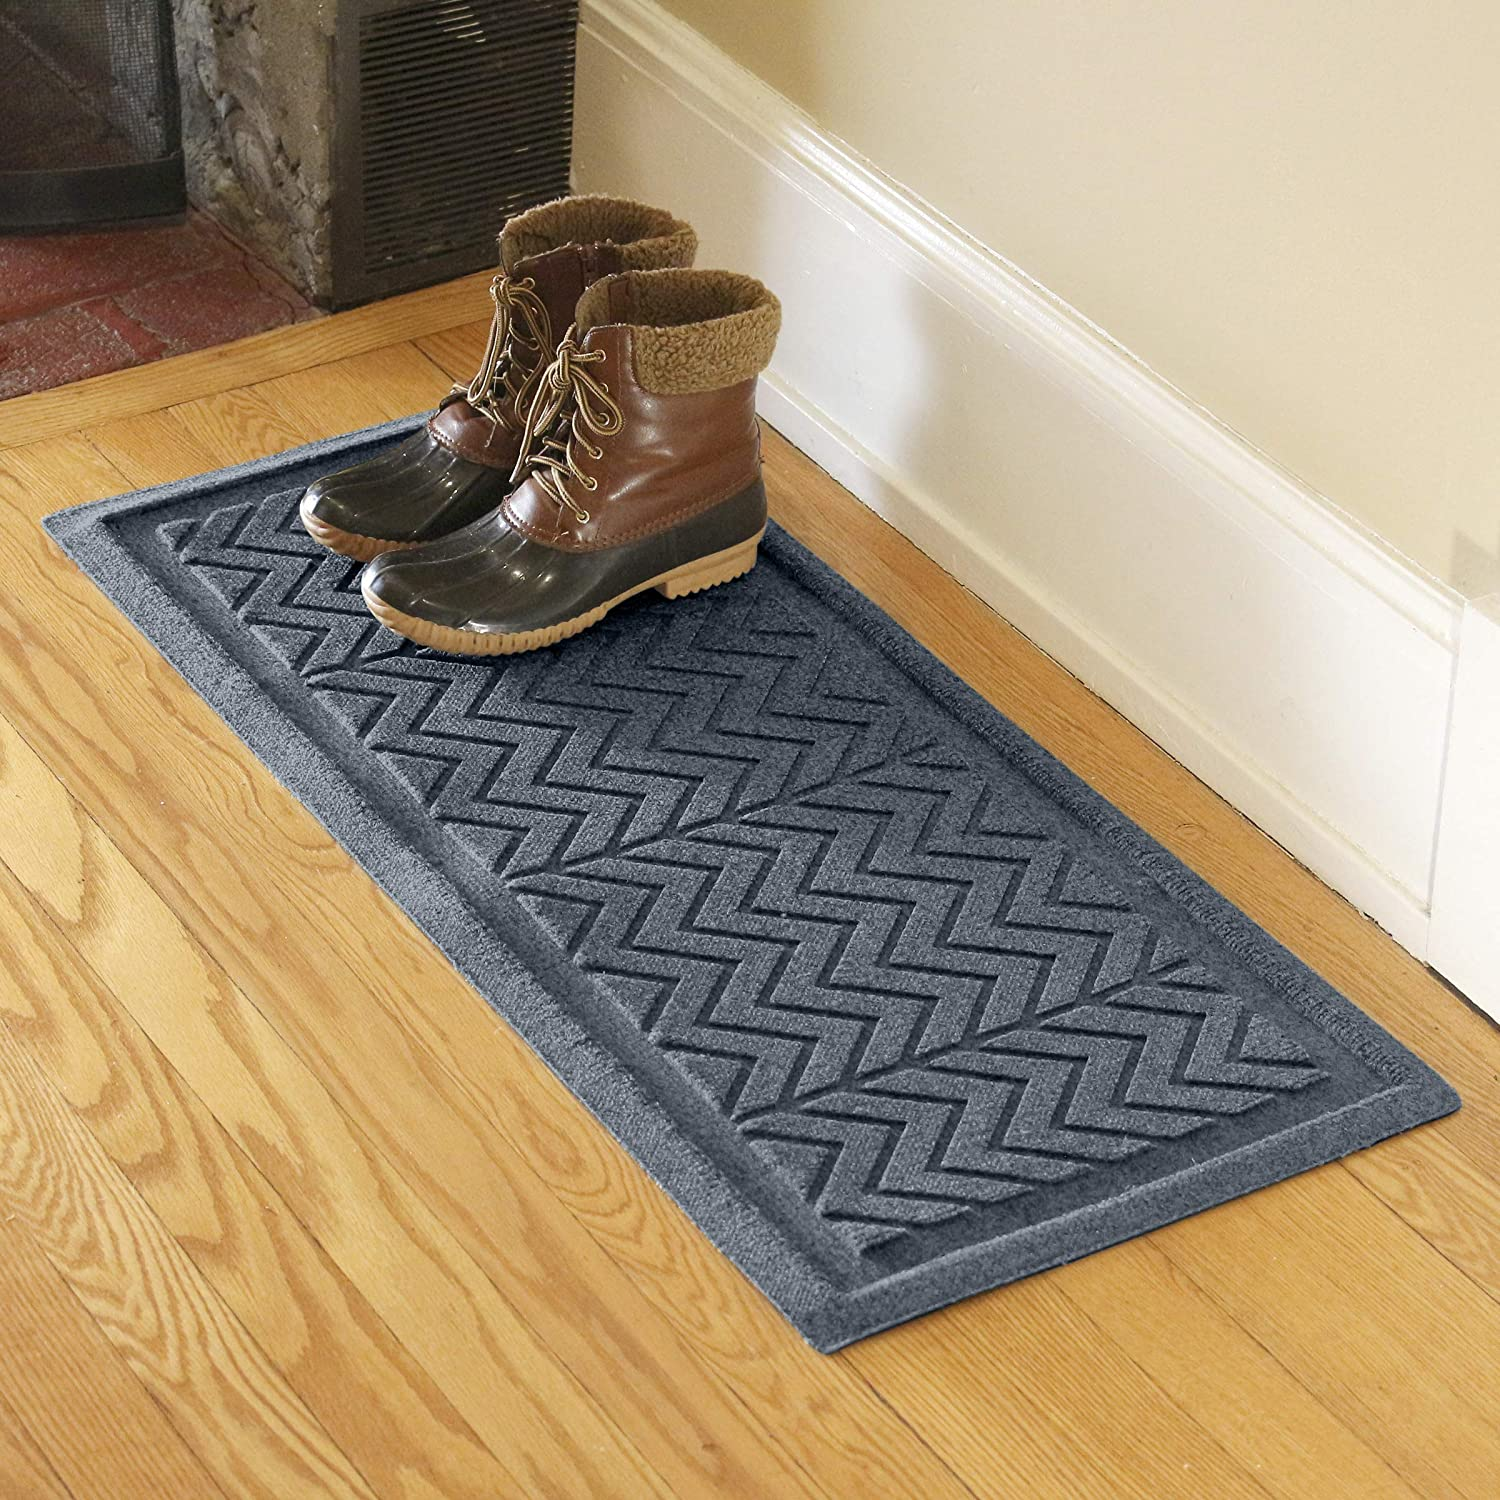 Bungalow Flooring Waterhog Indoor/Outdoor Boot Tray, 15 by 36 inches, Made in USA, Skid Resistant, Easy to Clean, Catches Water and Debris, Chevron Collection, Bluestone